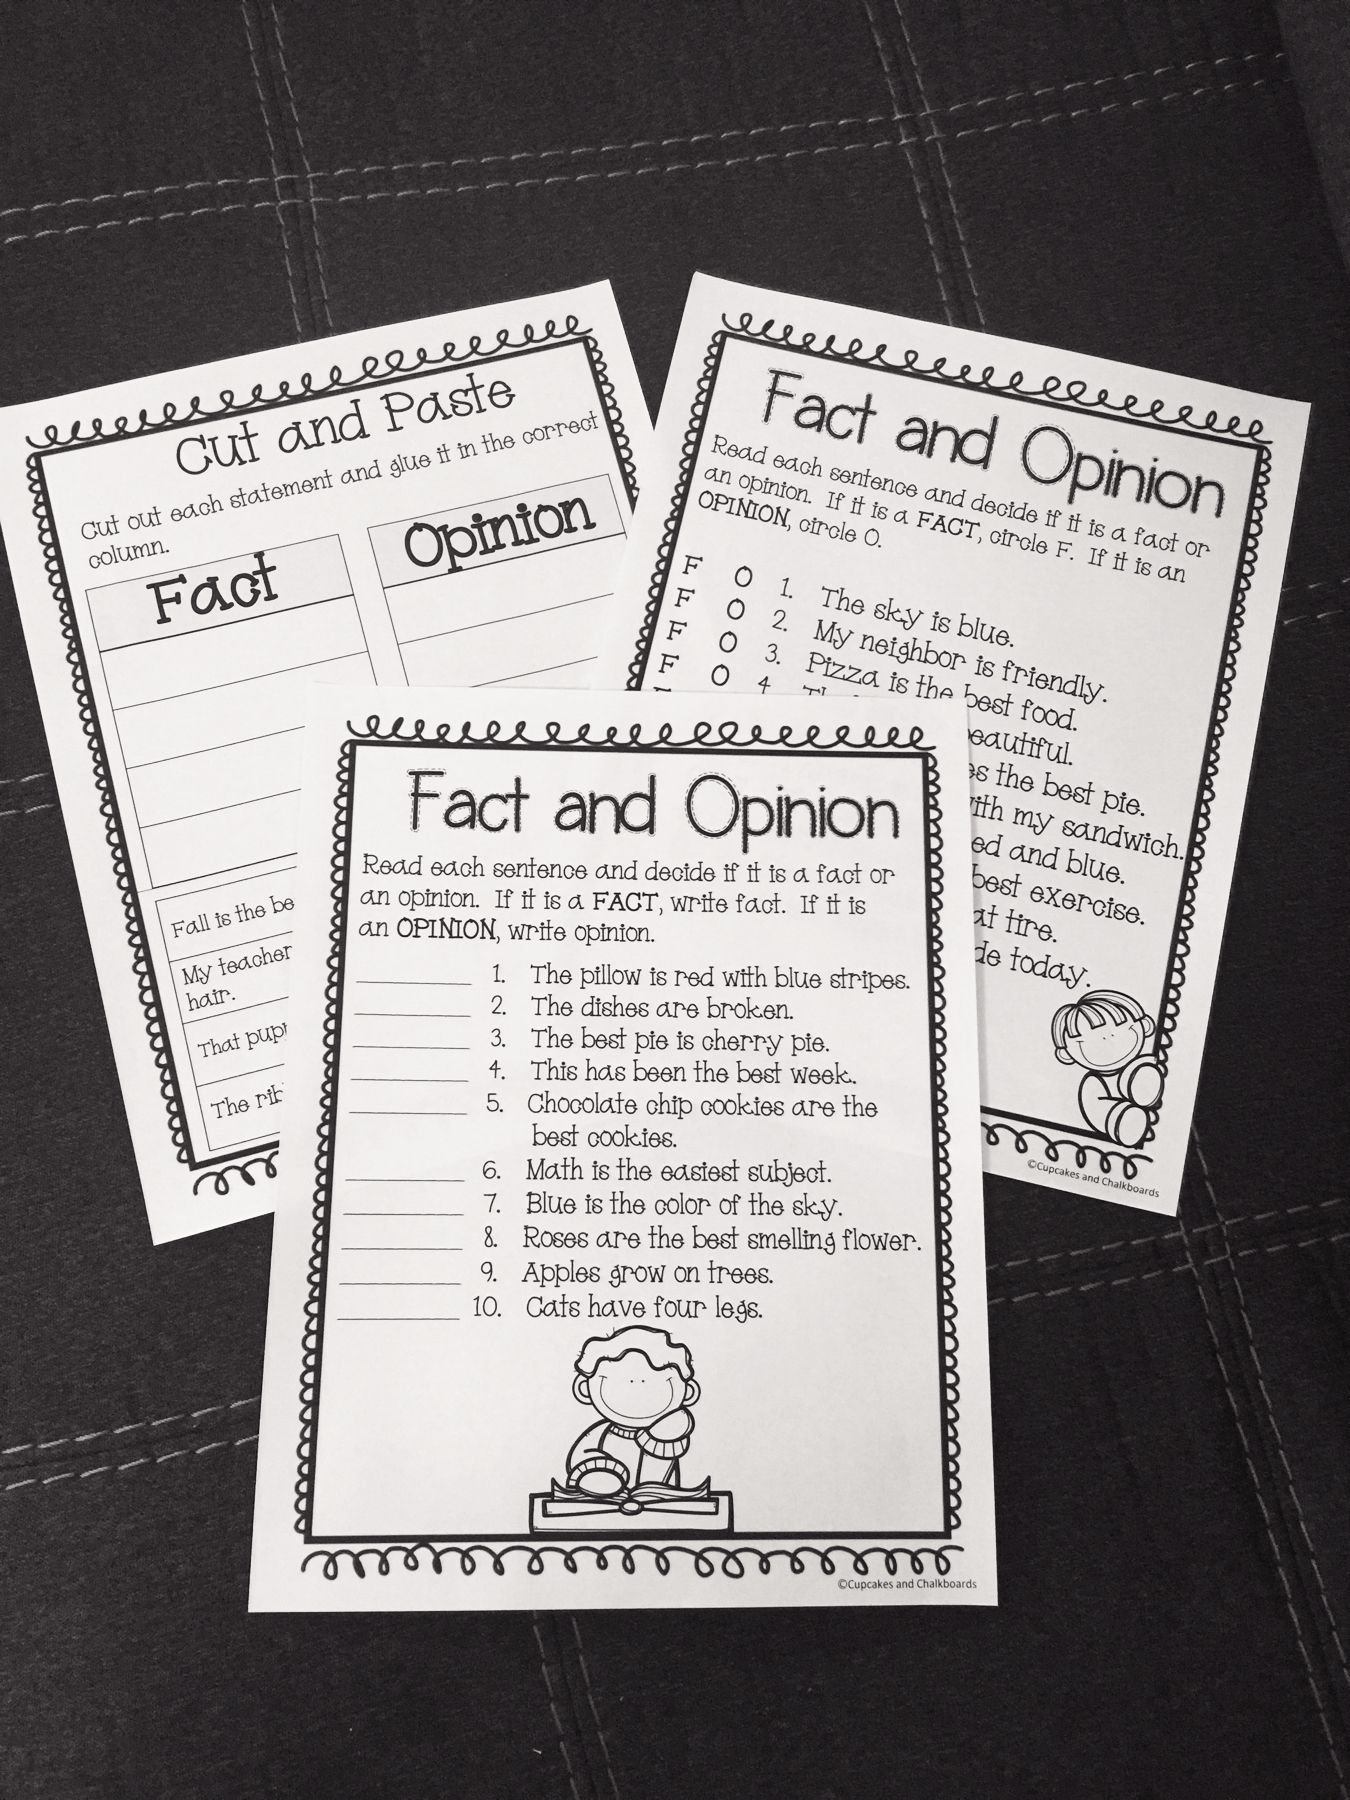 Worksheets To Help Teach And Practice Facts And Opinions Posters Are Also Included Fact And Opinion Fact And Opinion Worksheet Help Teaching